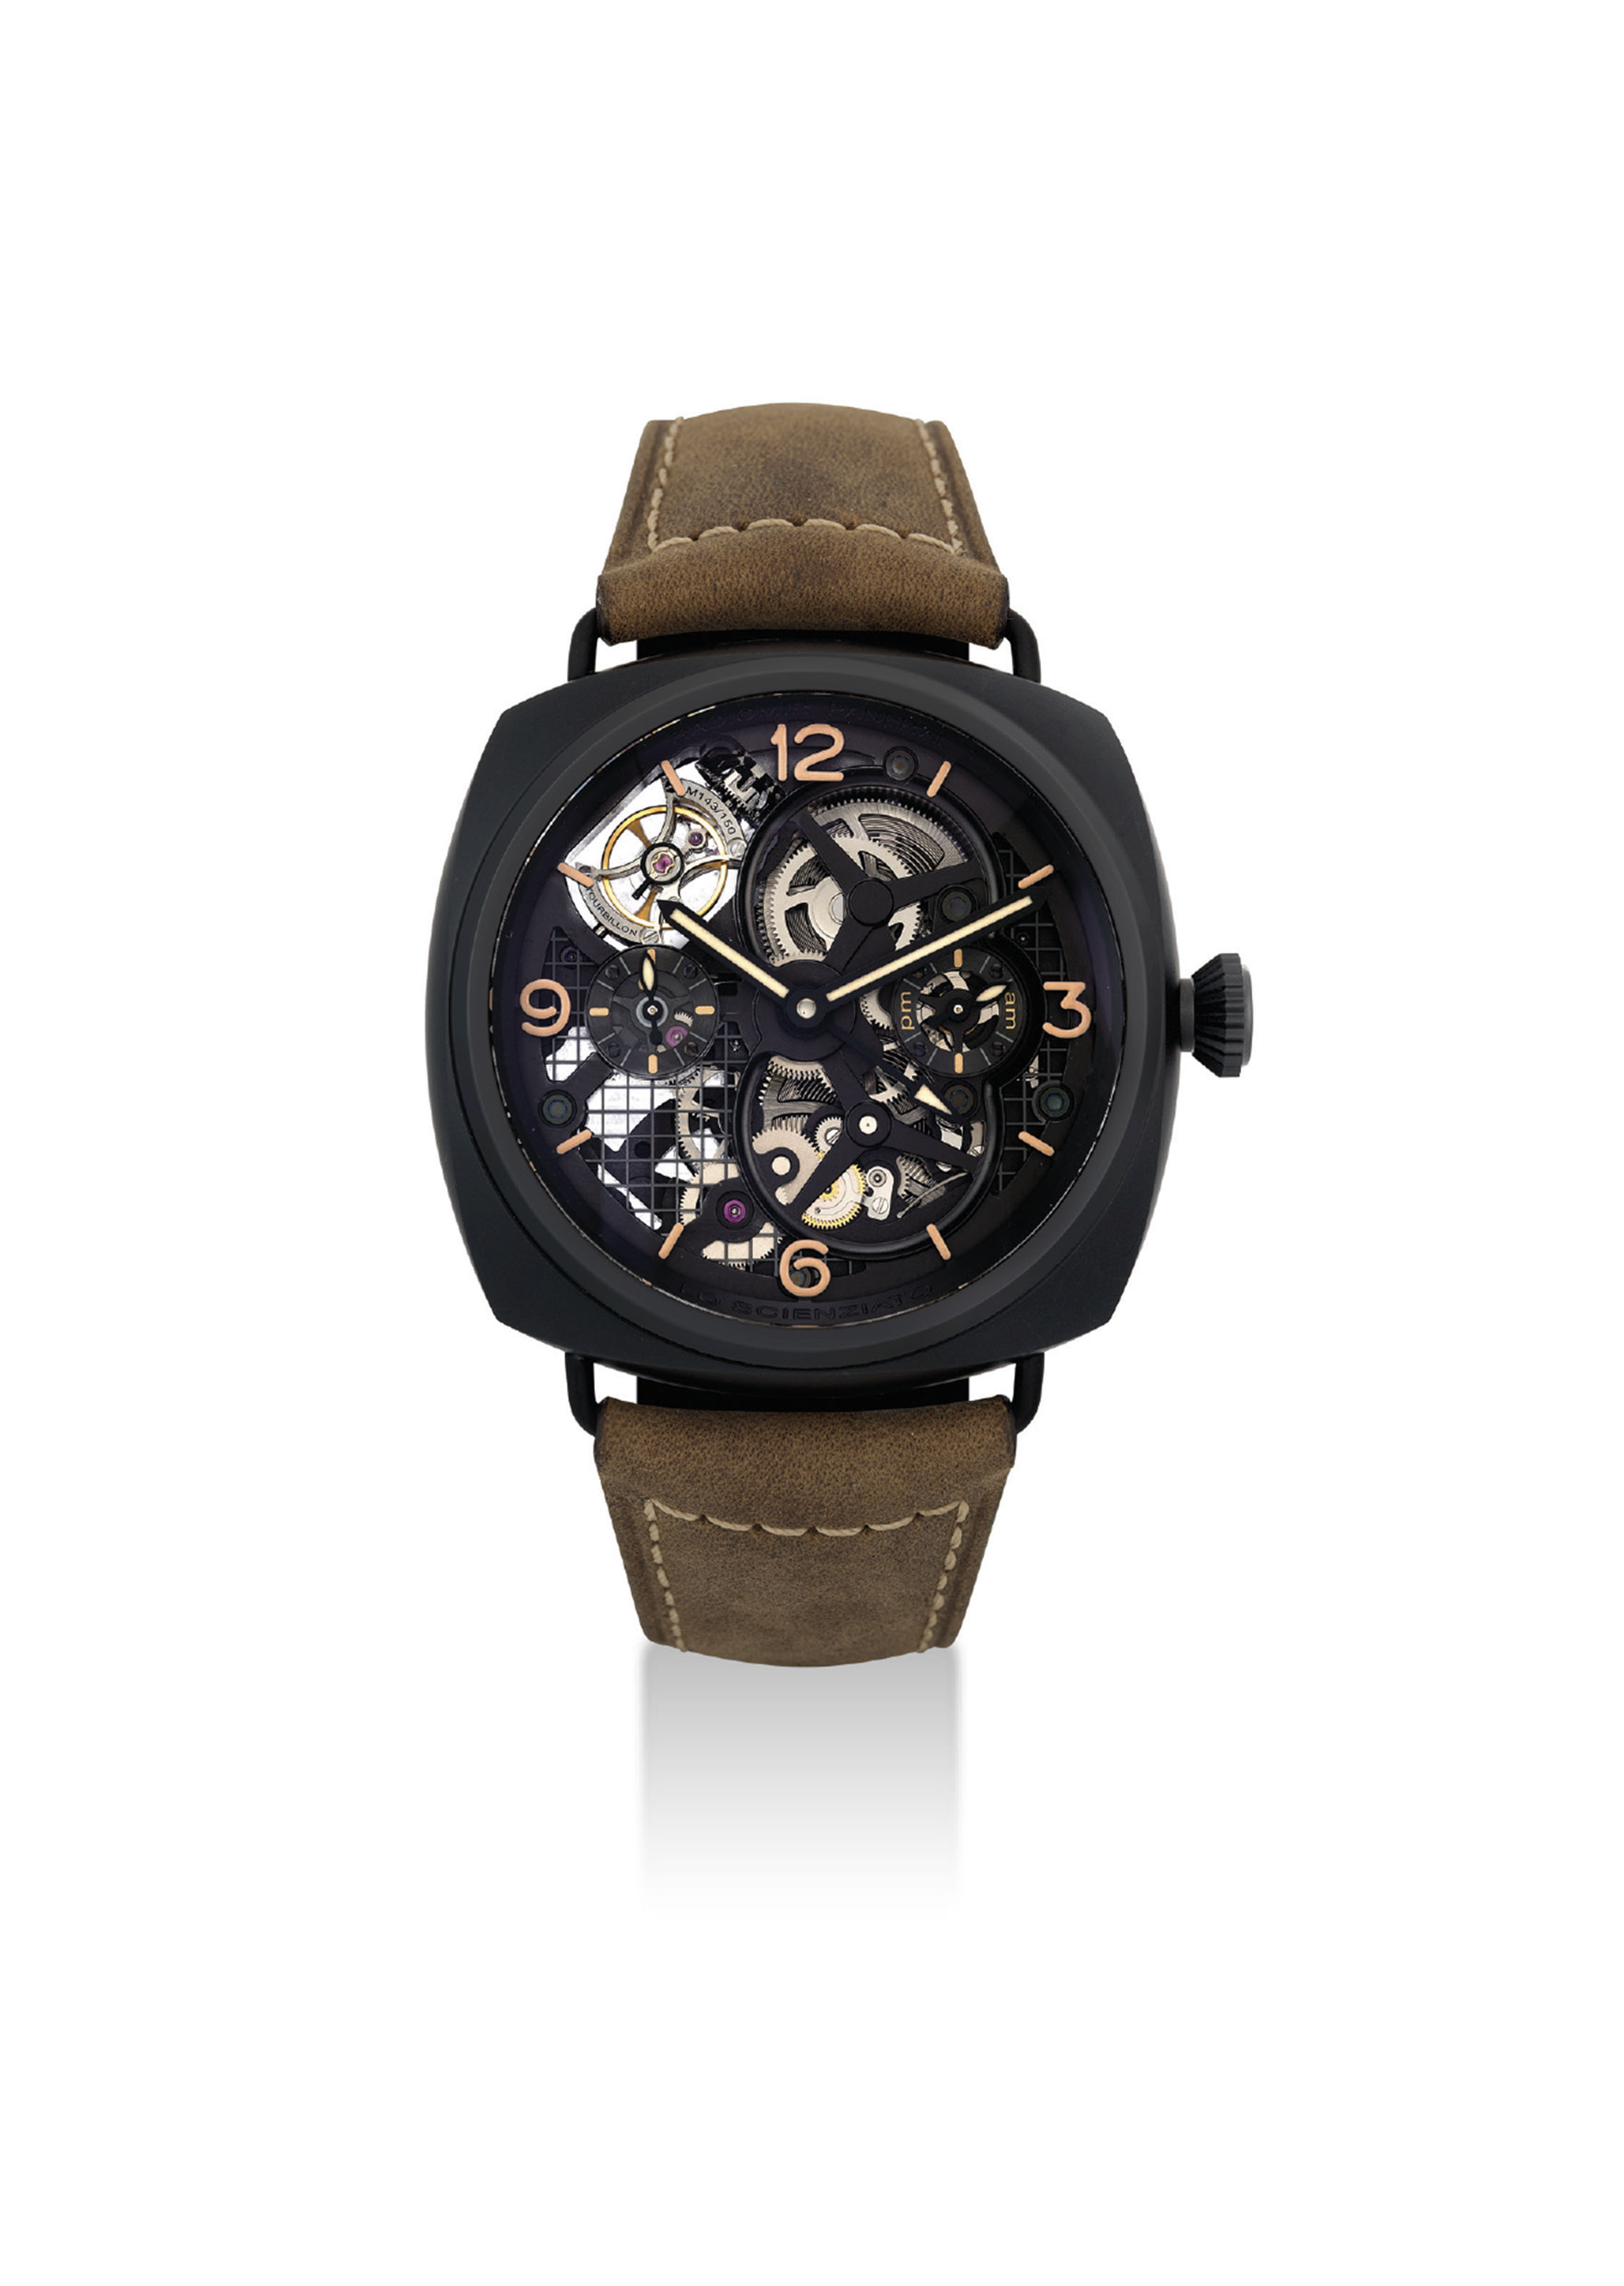 PANERAI. A VERY FINE AND RARE CERAMIC LIMITED EDITION CUSHION-SHAPED SKELETONISED TOURBILLION DUAL TIME WRISTWATCH WITH 6 DAY POWER RESERVE AND DAY AND NIGHT INDICATION